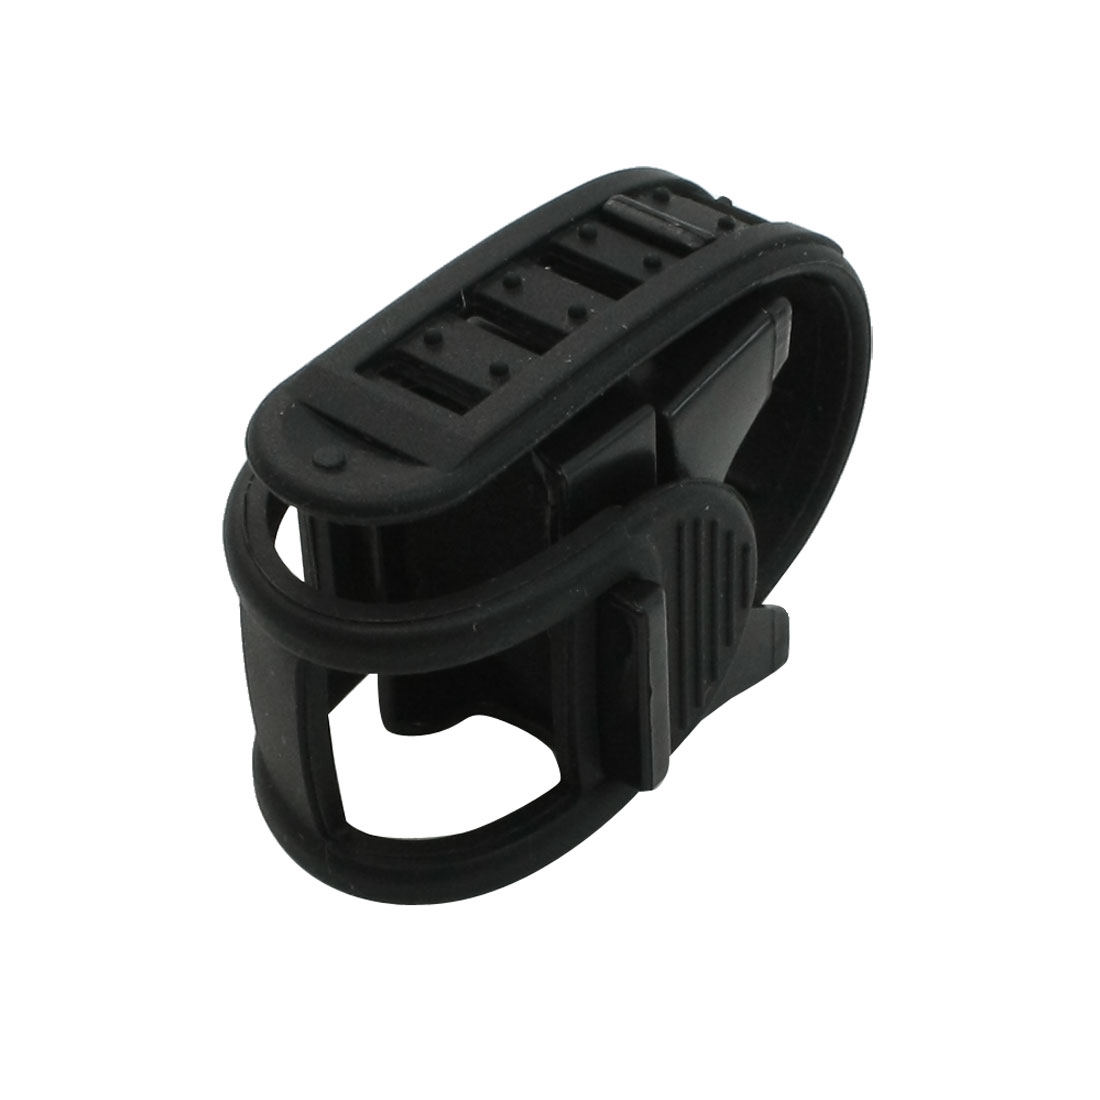 LED Flashlight Torch Holder Clip Soft Plastic Band for Bicycle Bike